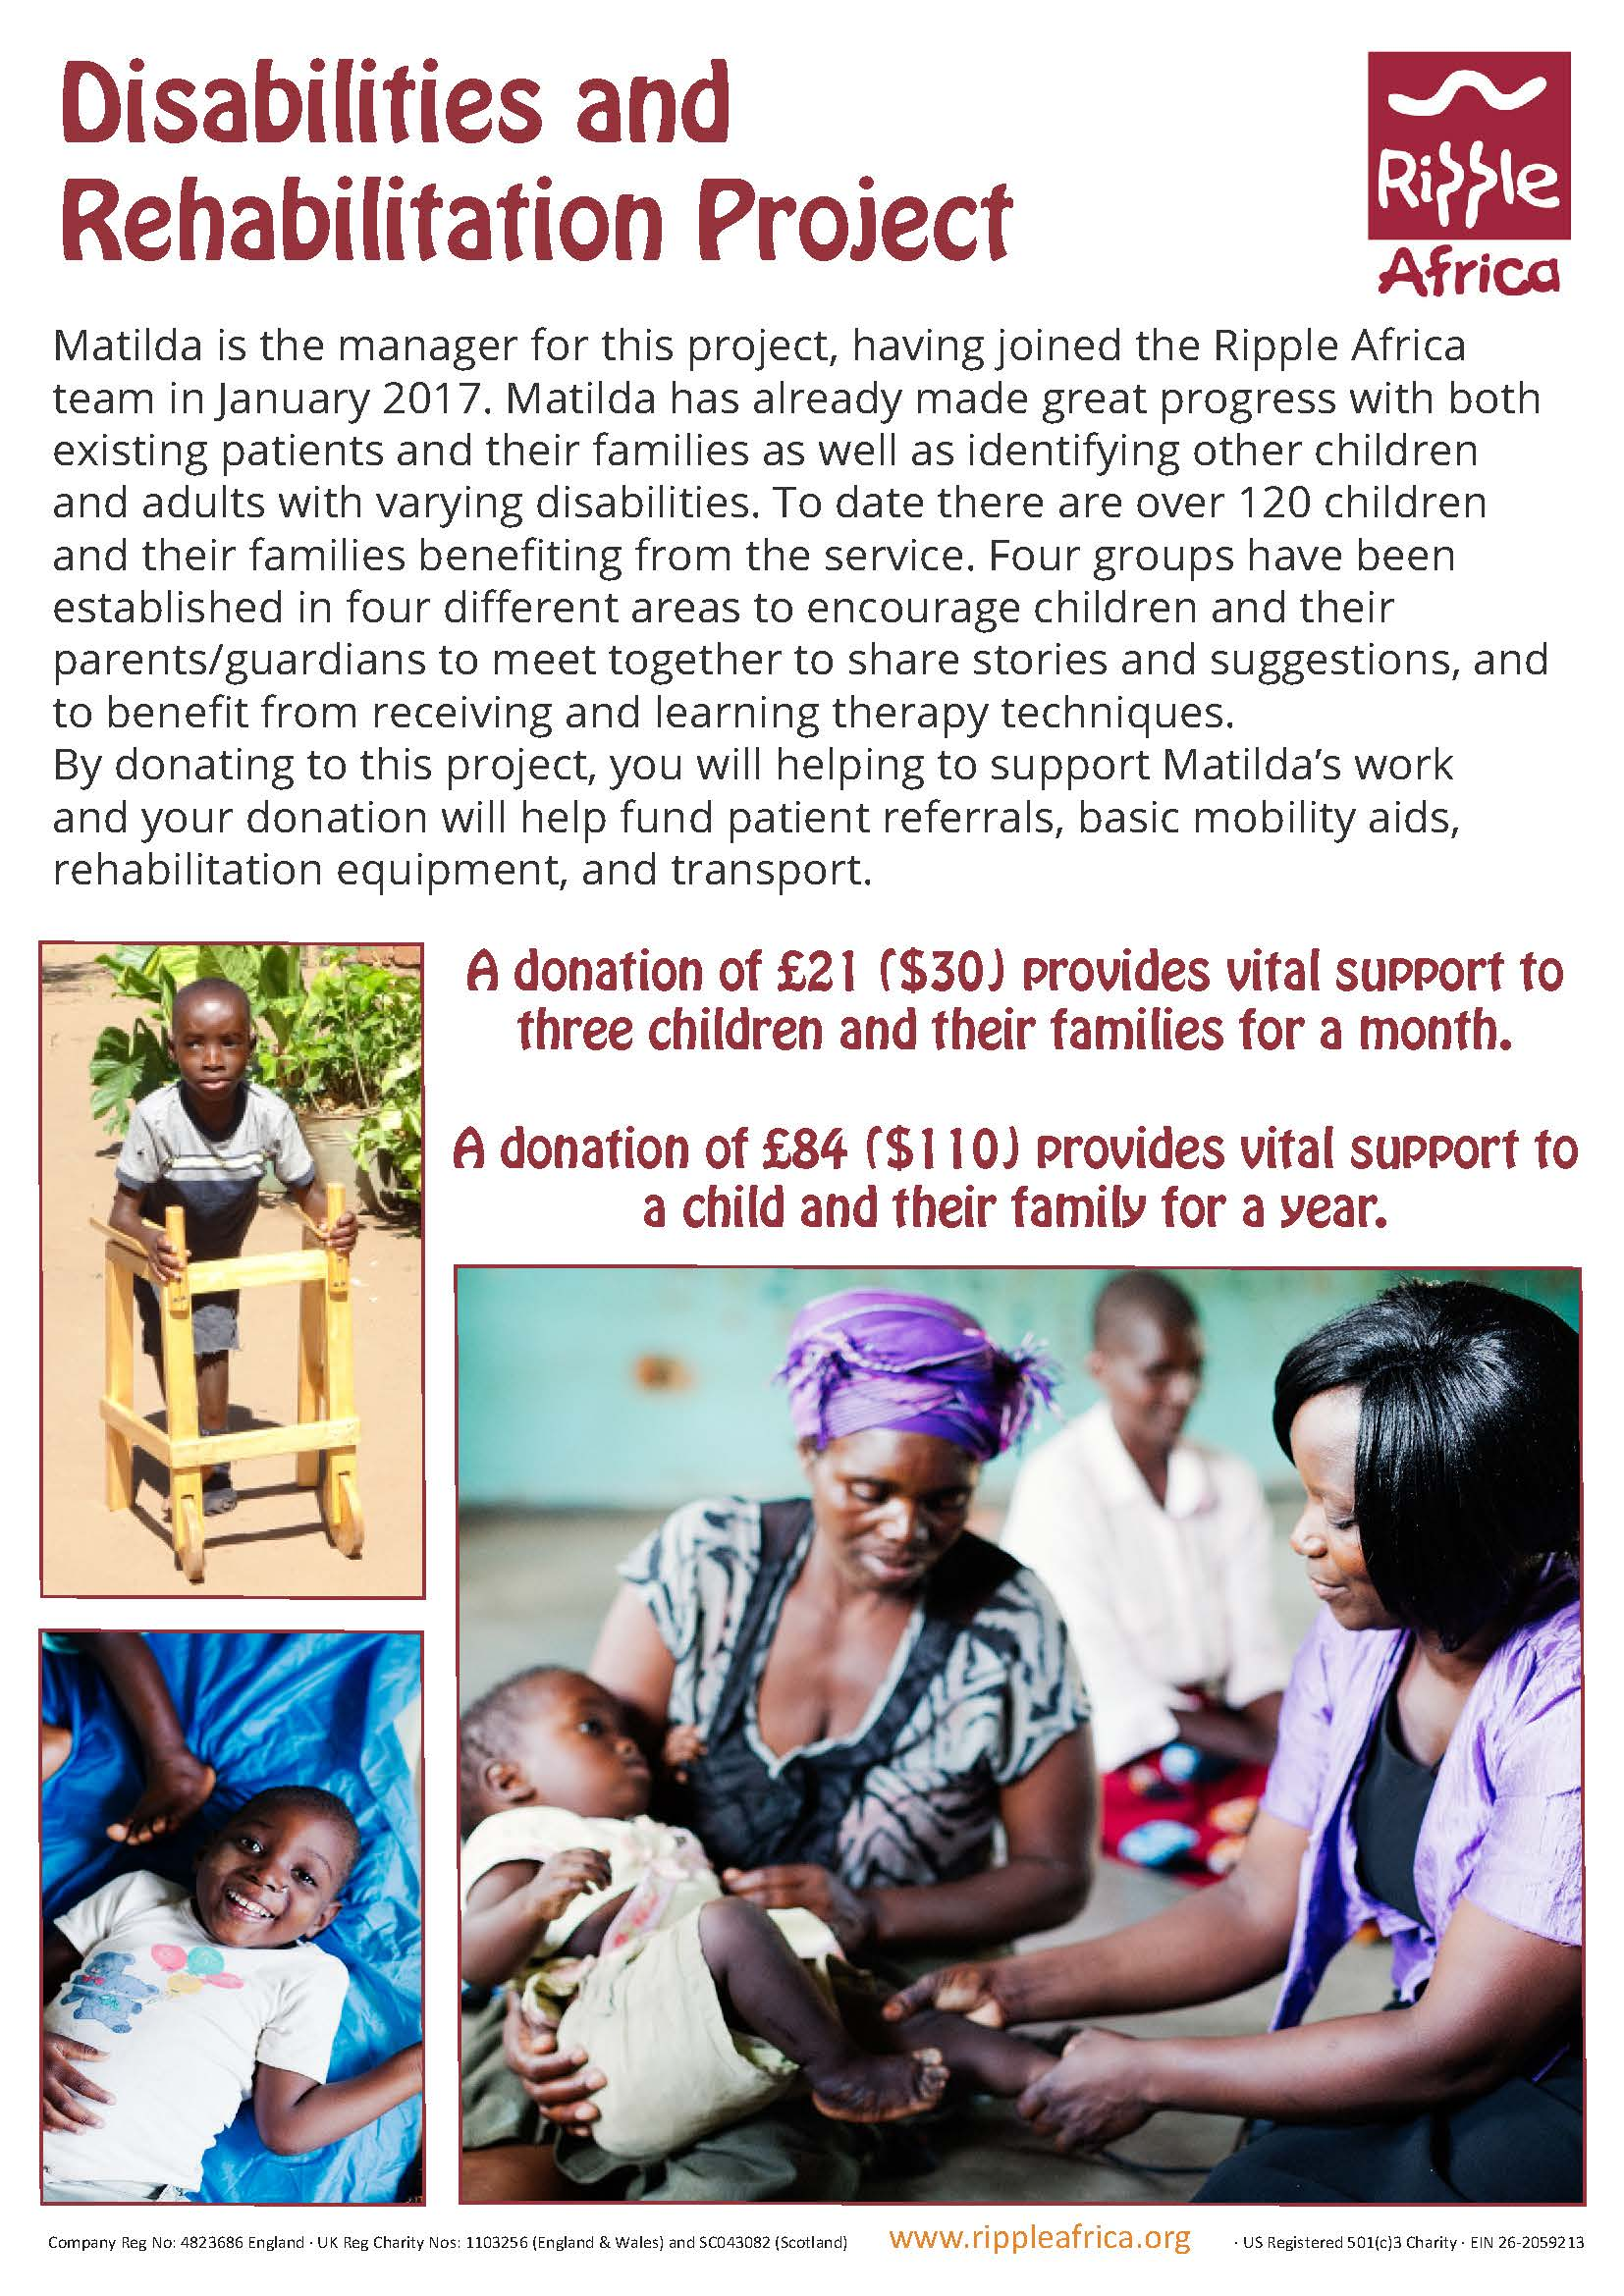 Donating to support a disabilities project in Malawi